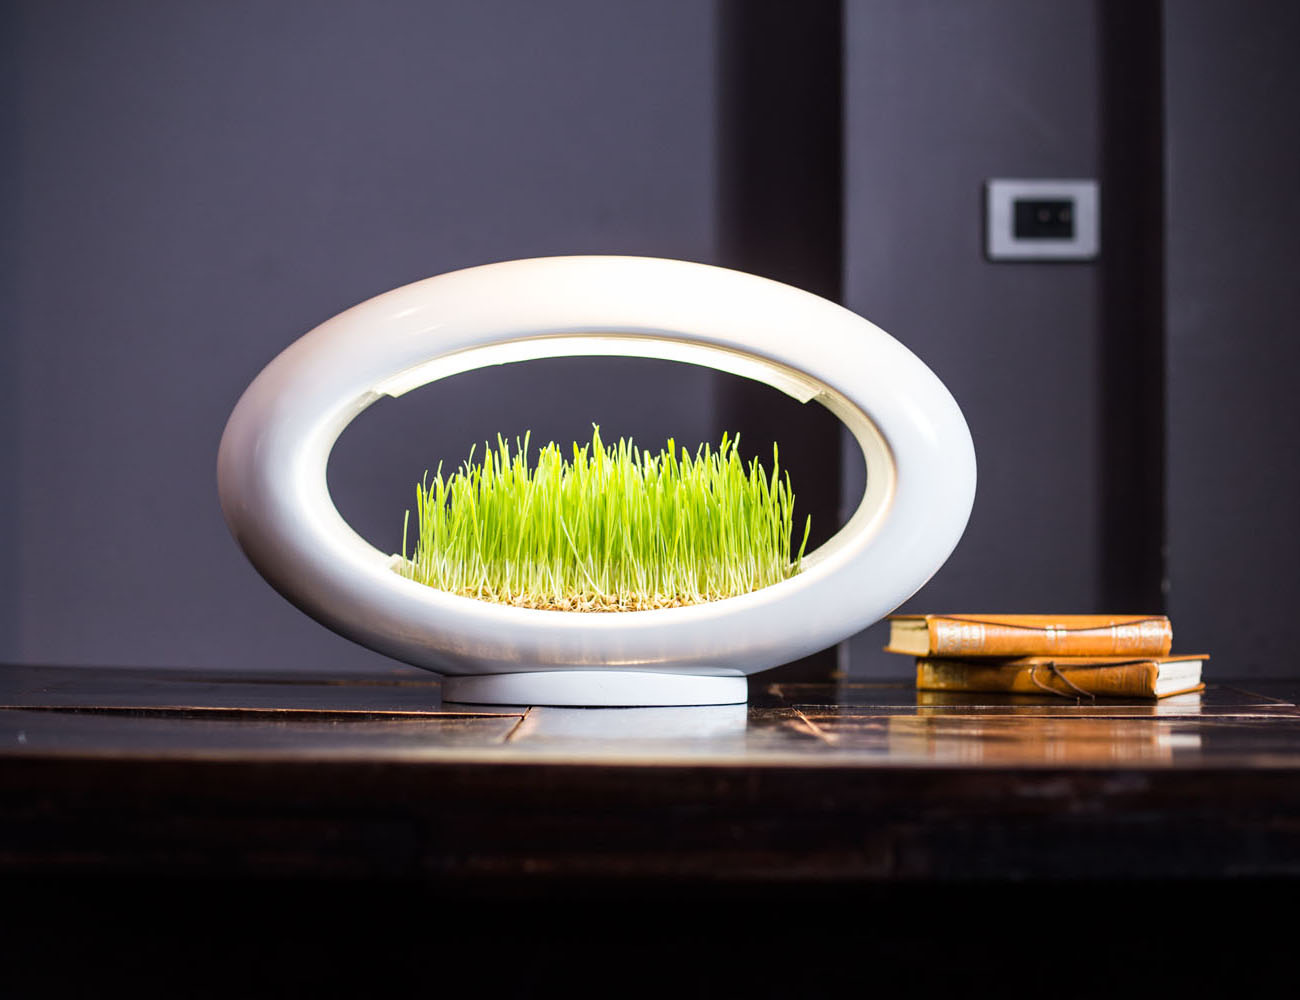 Grasslamp The Desktop Garden and Light Review The Gadget Flow